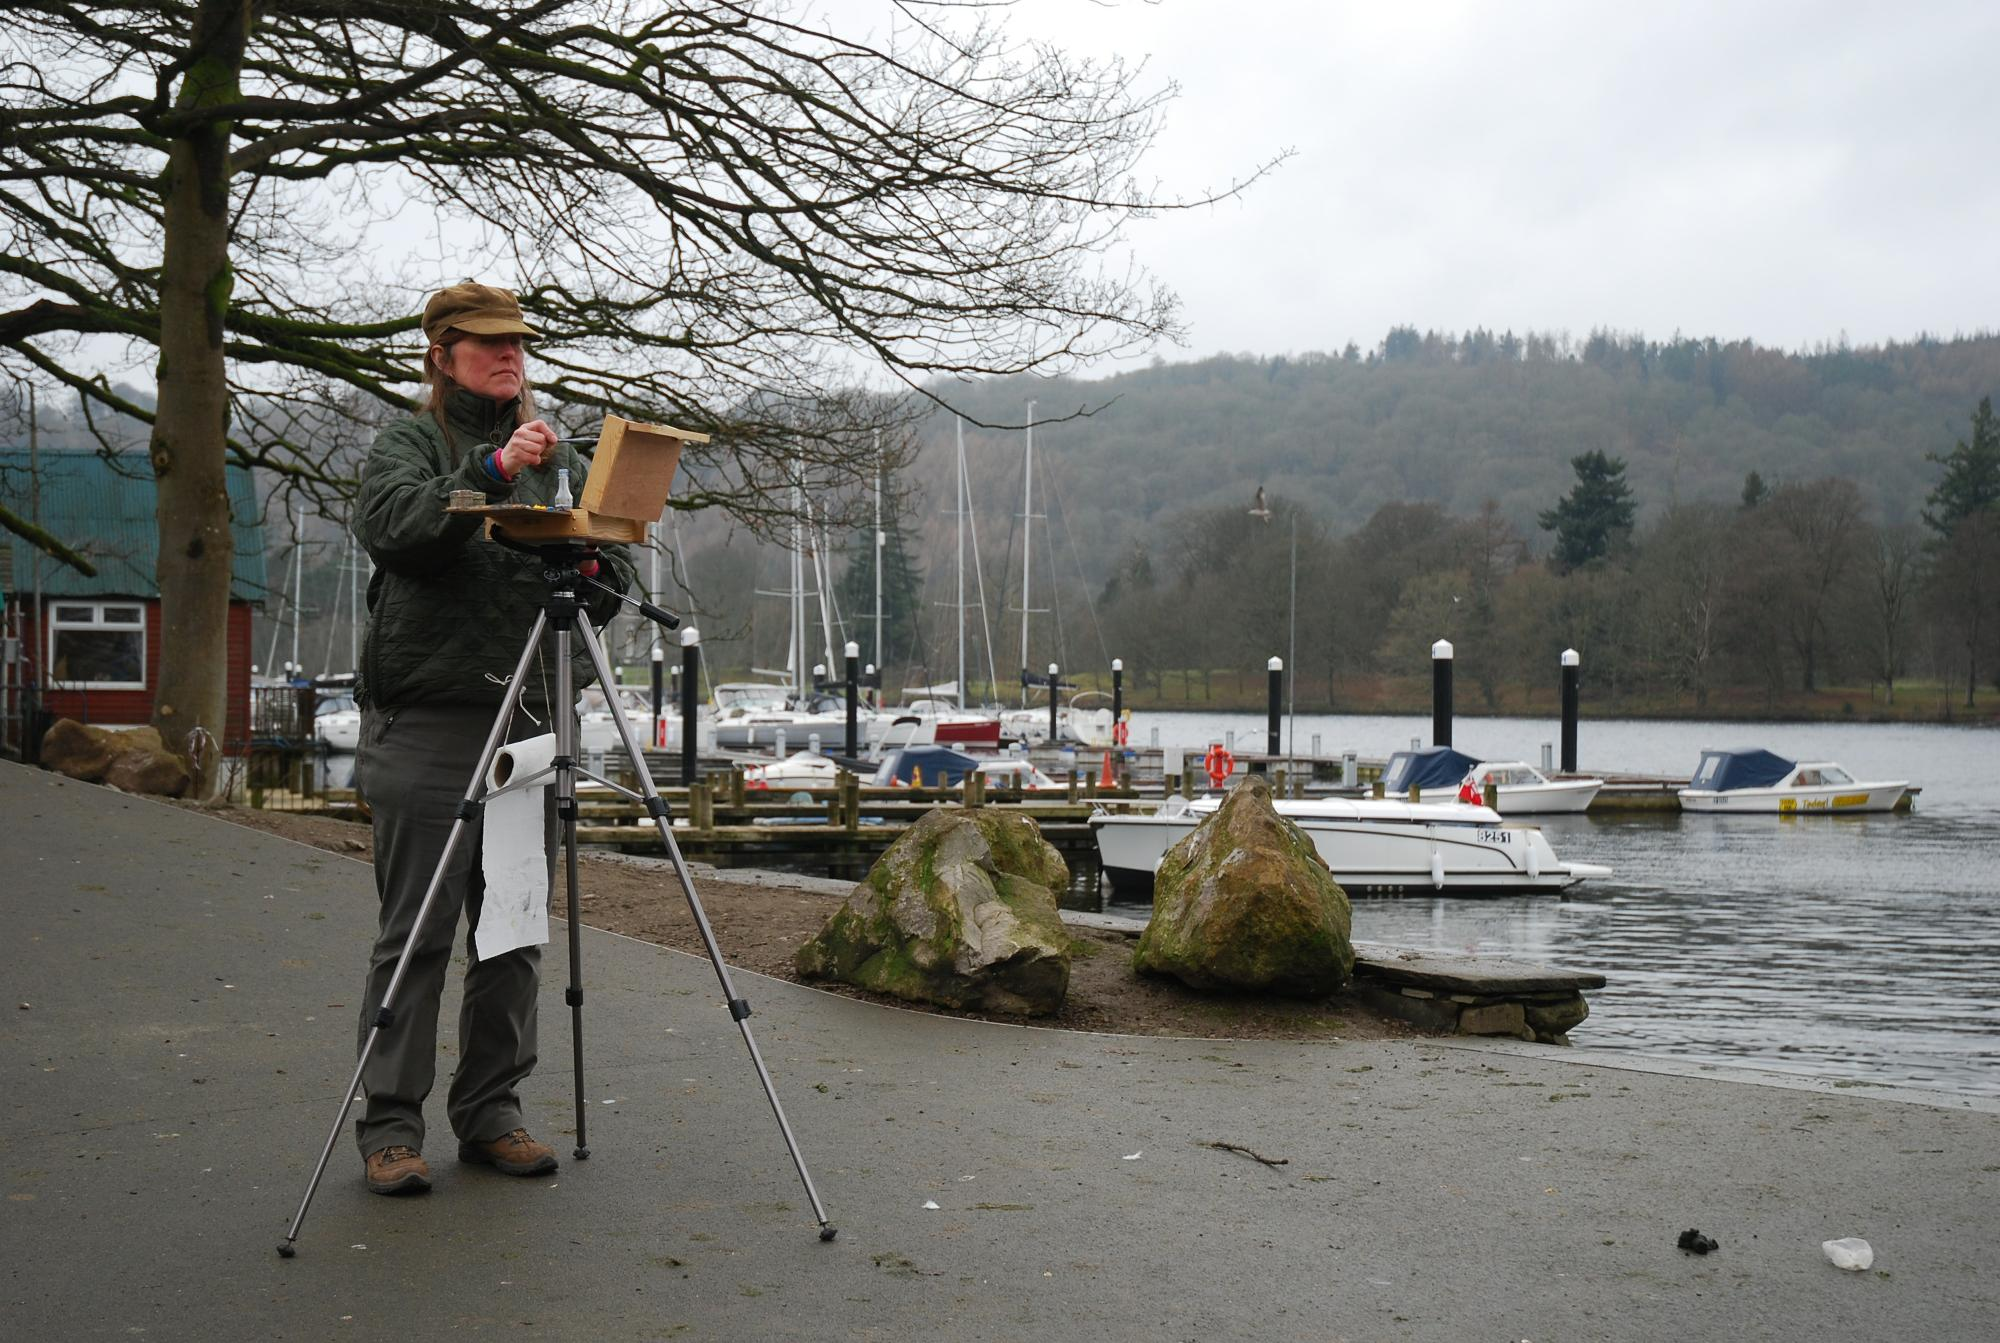 Sketching at Windermere